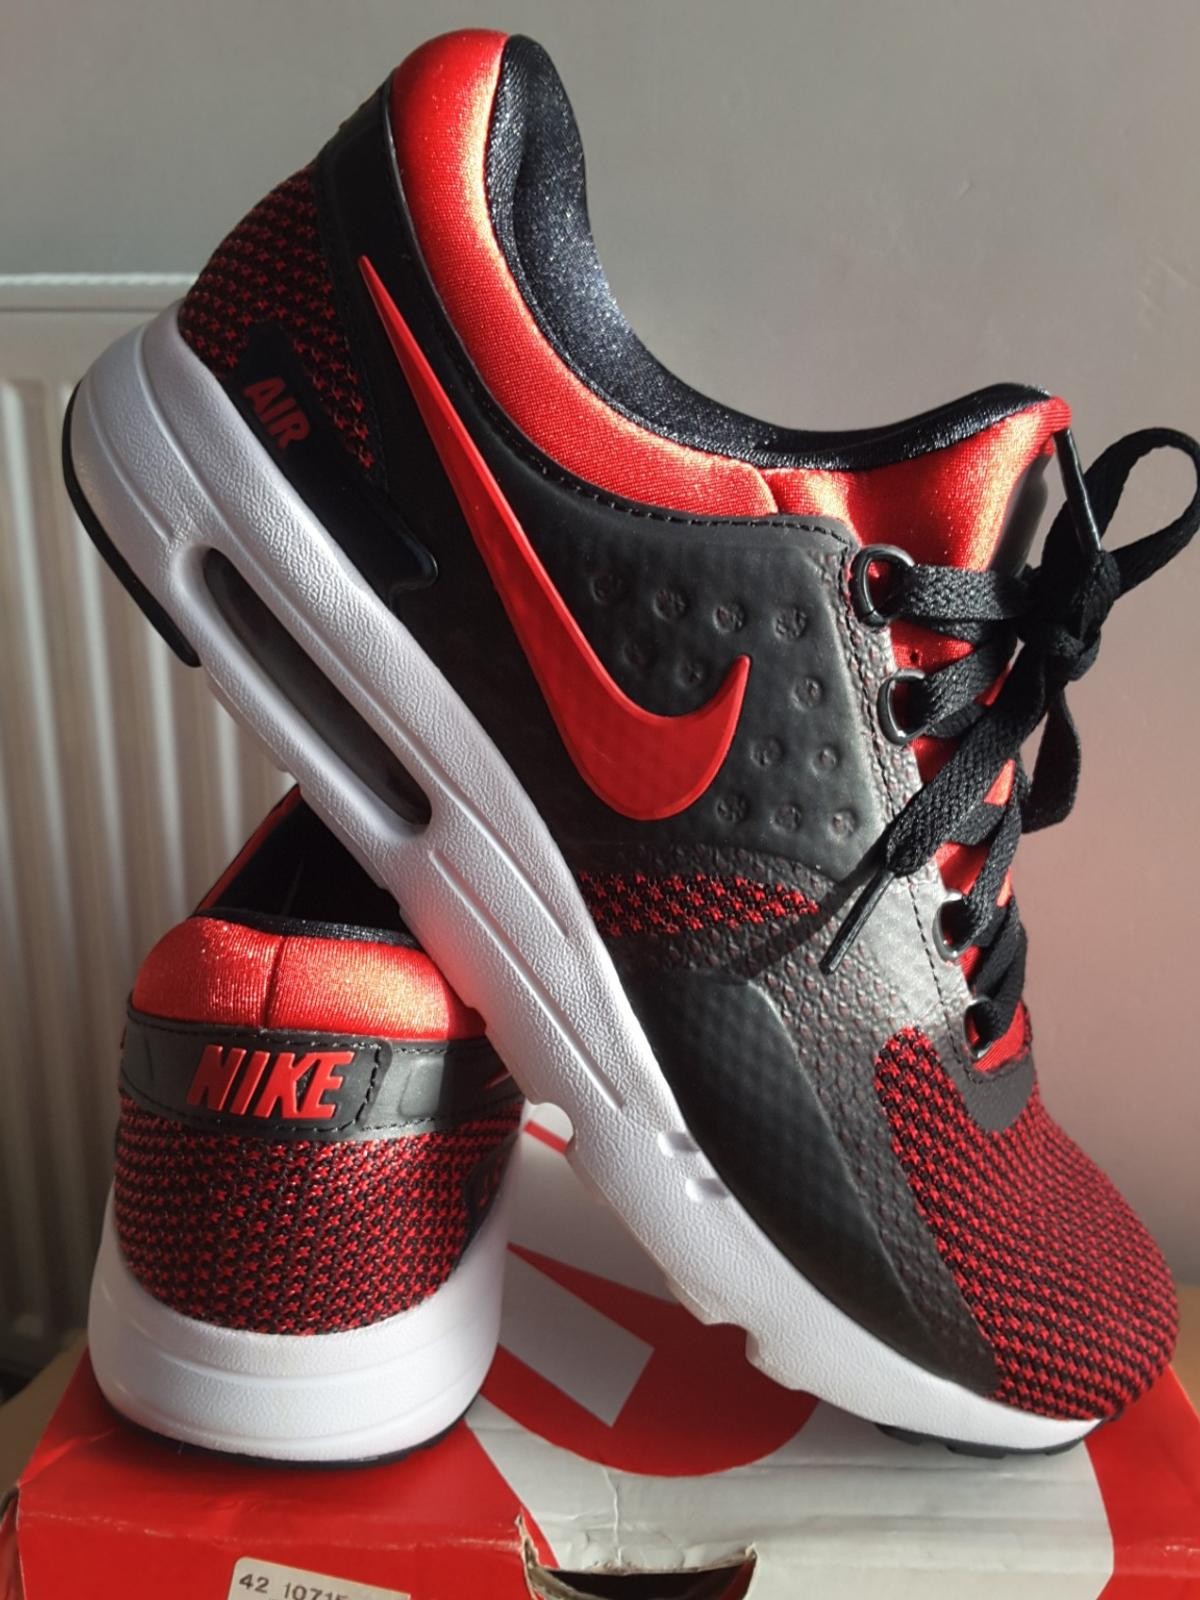 MENS NIKE AIR MAX 90 TRAINERS UK 8 EUR 42 in SW9 Lambeth für